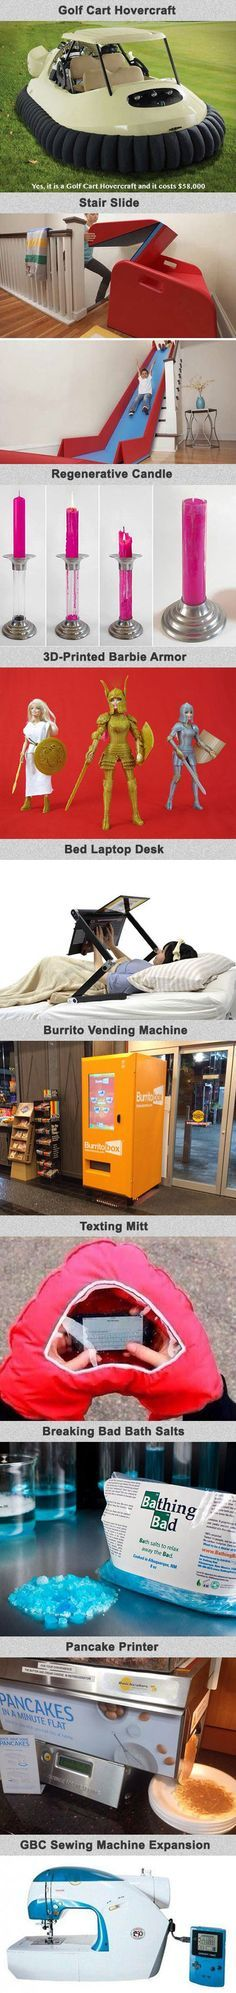 Here are some bizarre gadgets and random inventions you will not believe actually exist.